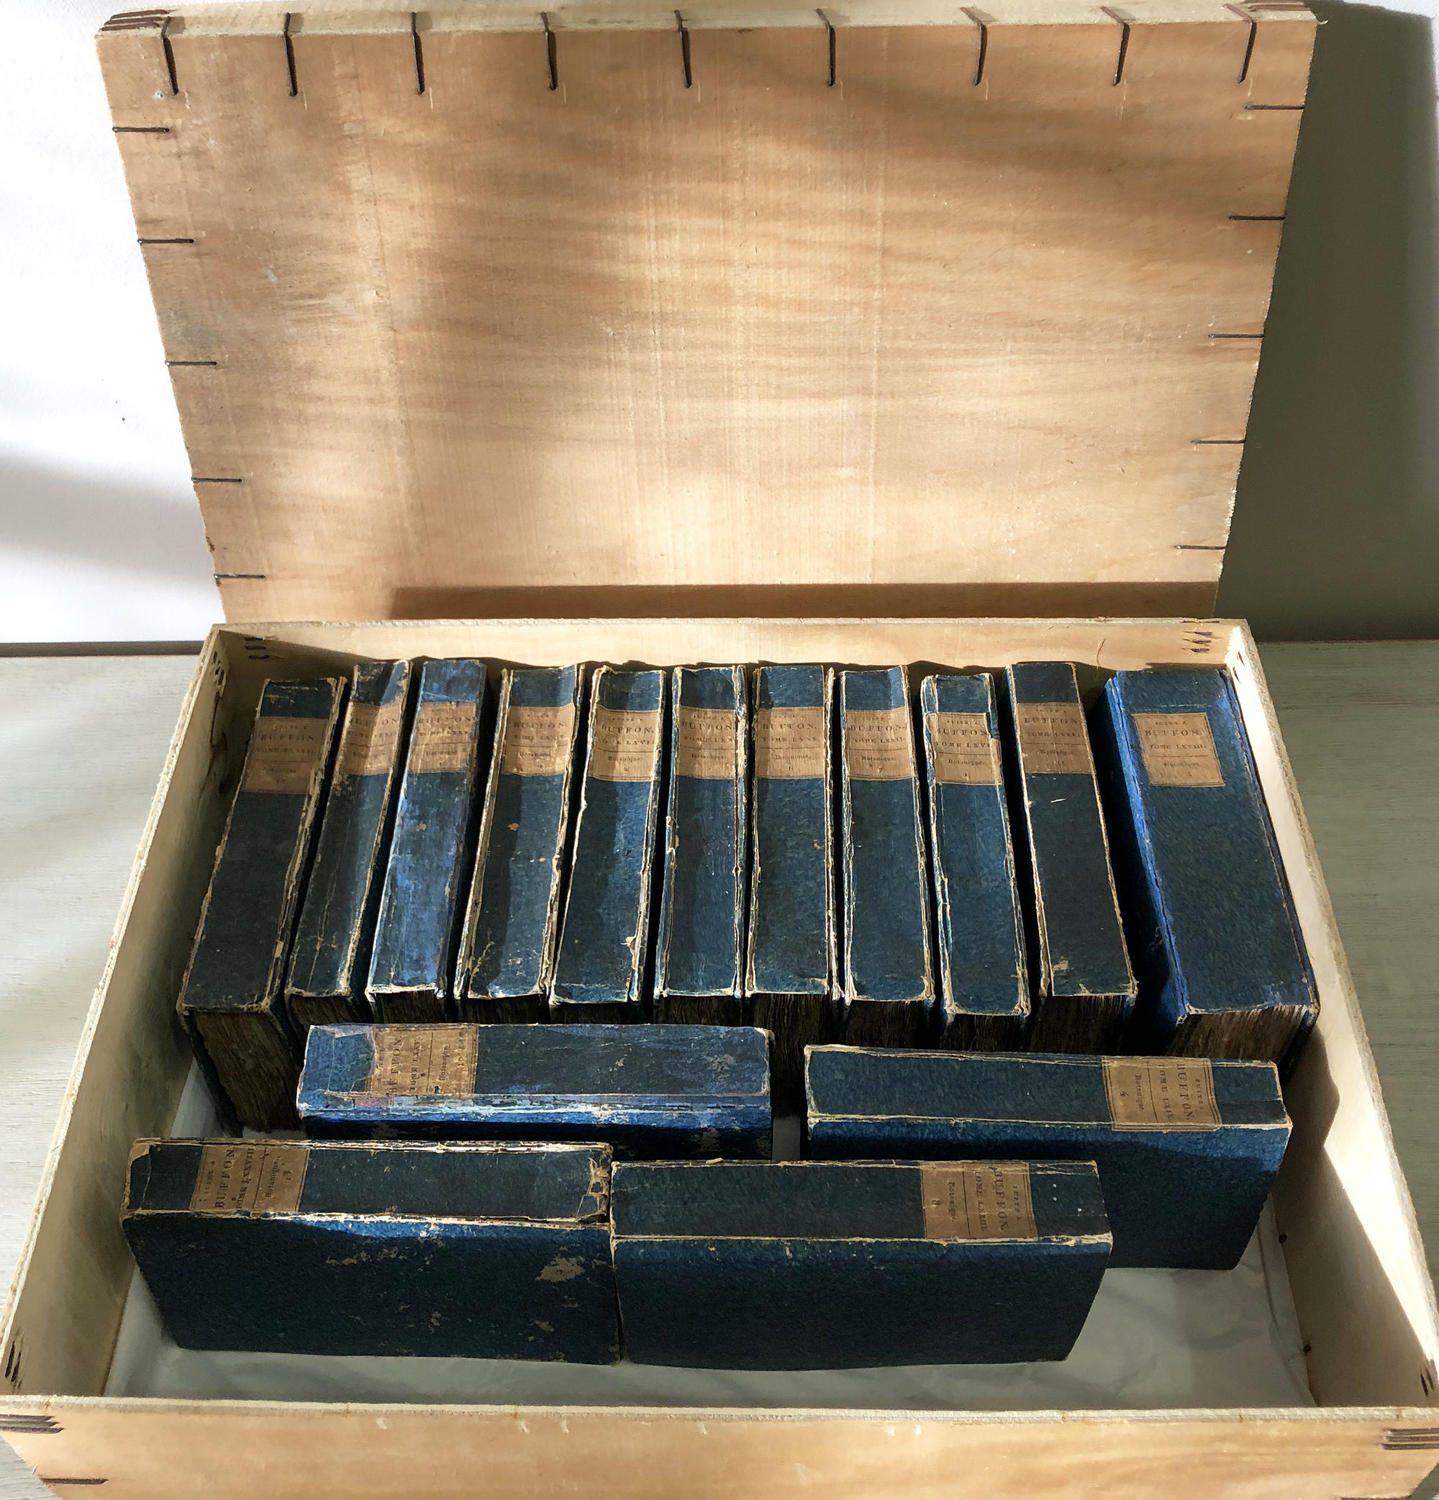 Set of 15 19th c French Blue Books by 'Buffon' in Box